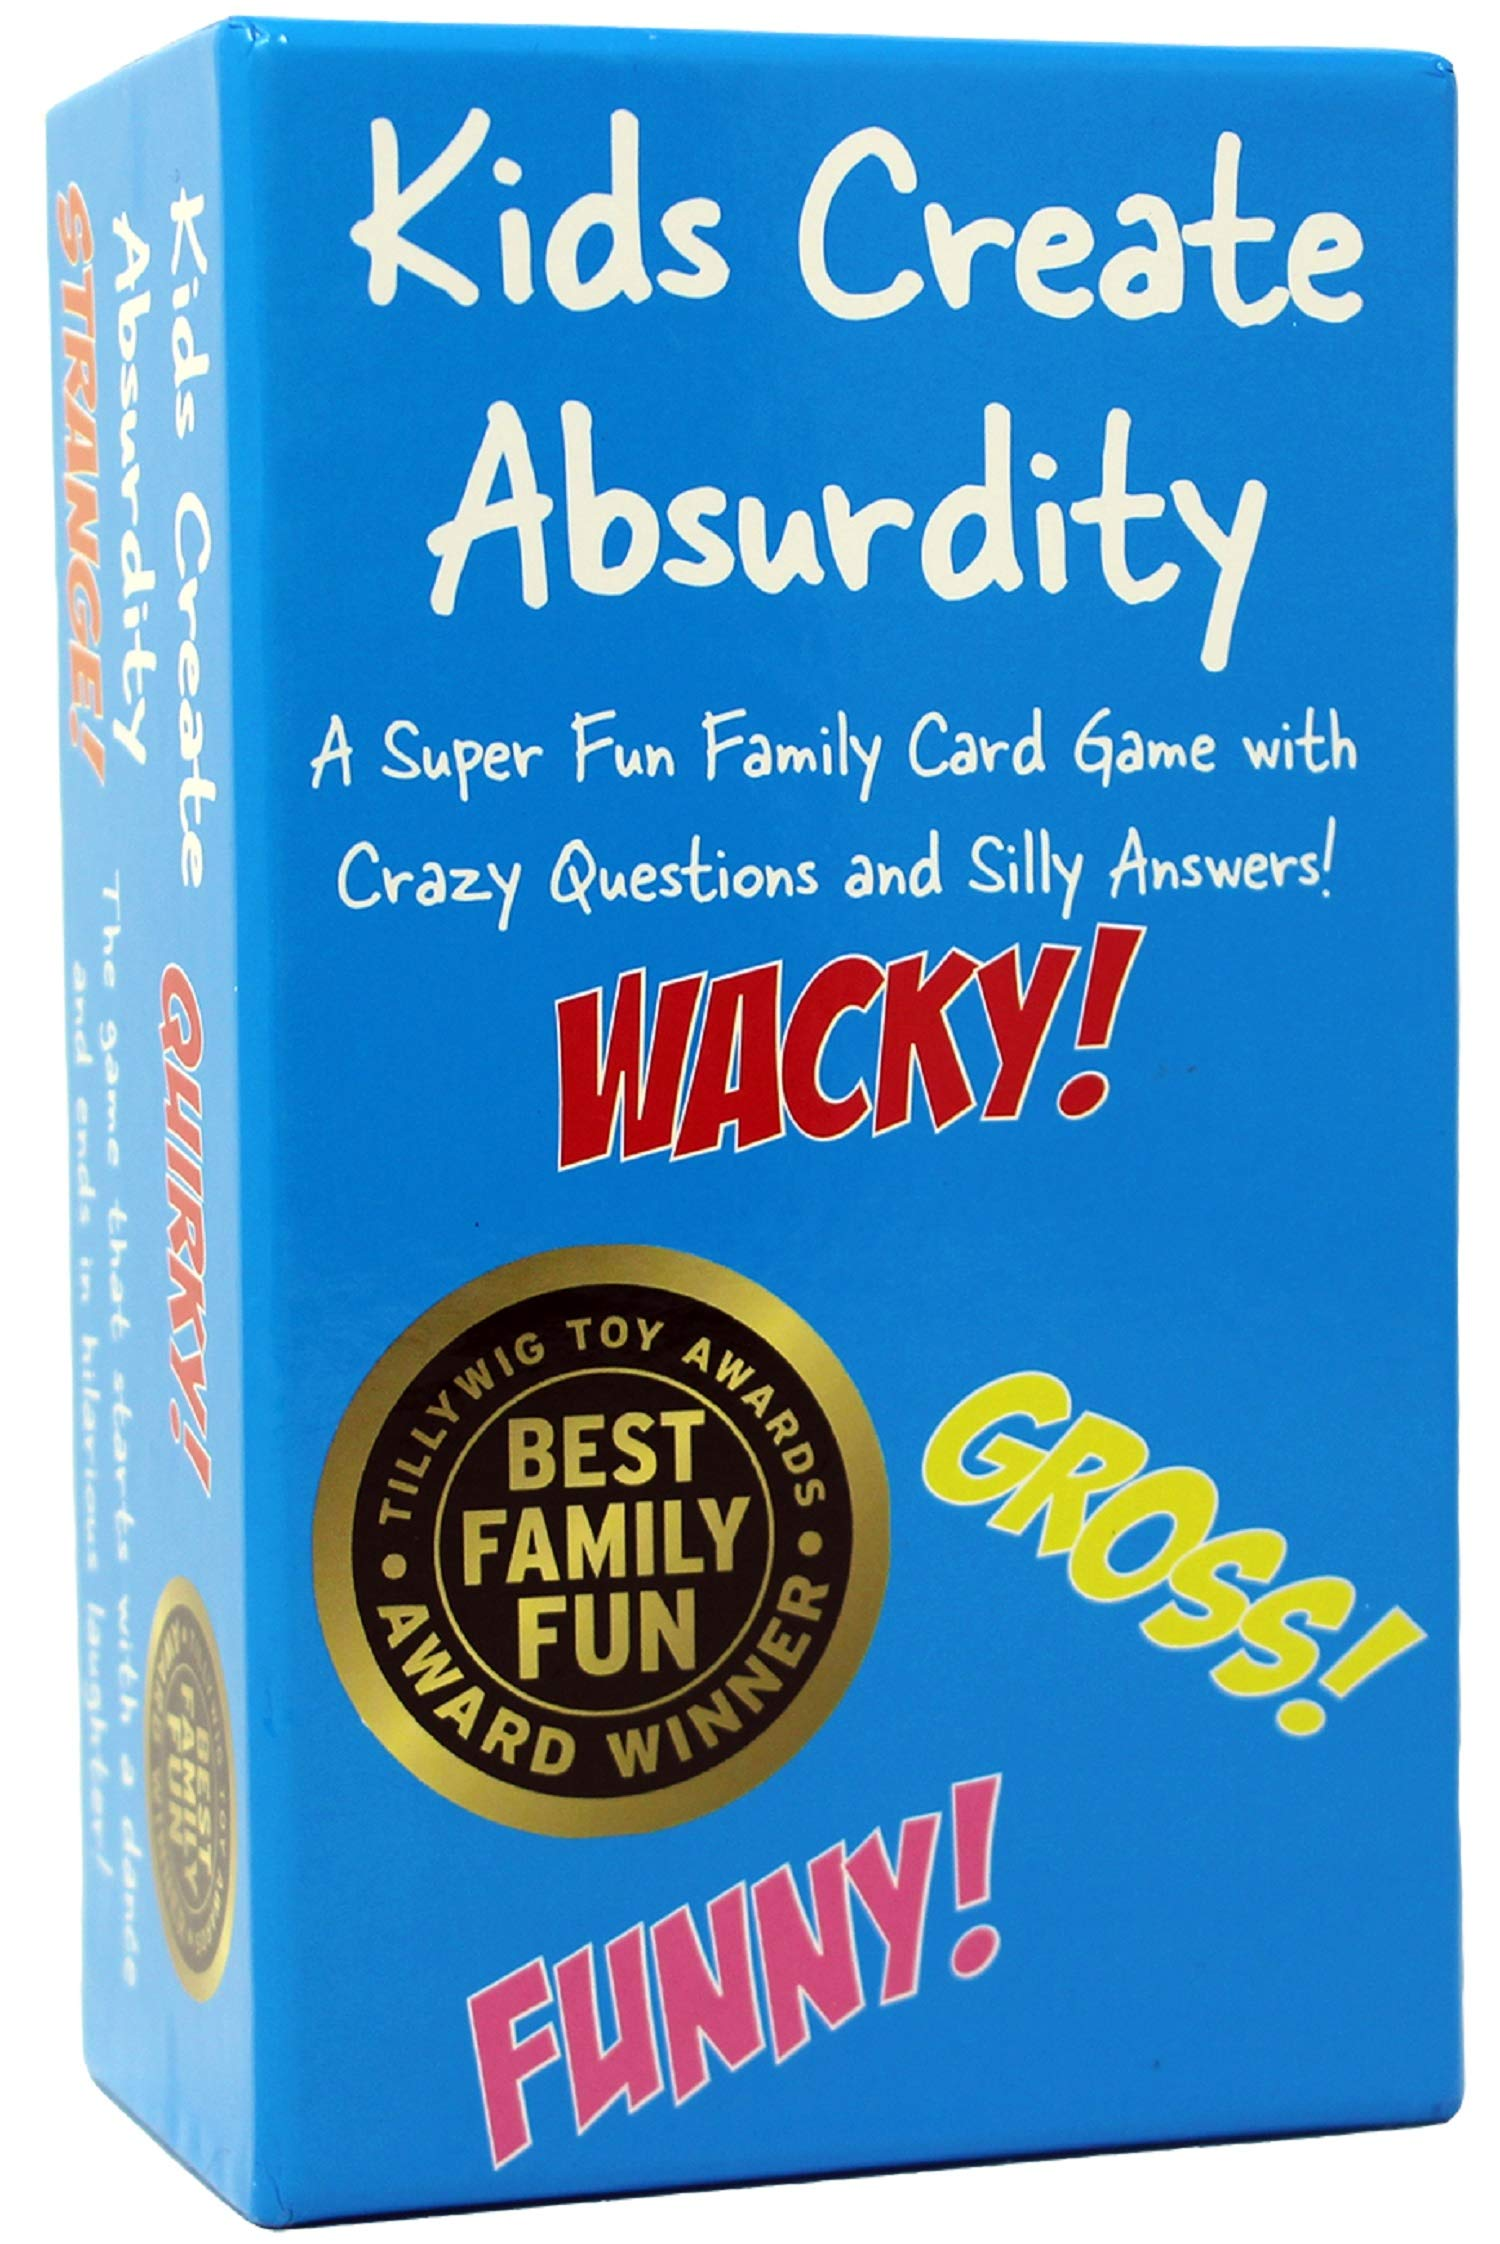 Kids Create Absurdity: Laugh Until You Cry! Wacky & Wild Fun Family Card Game for Game Night and Travel-Camp-Vacation!